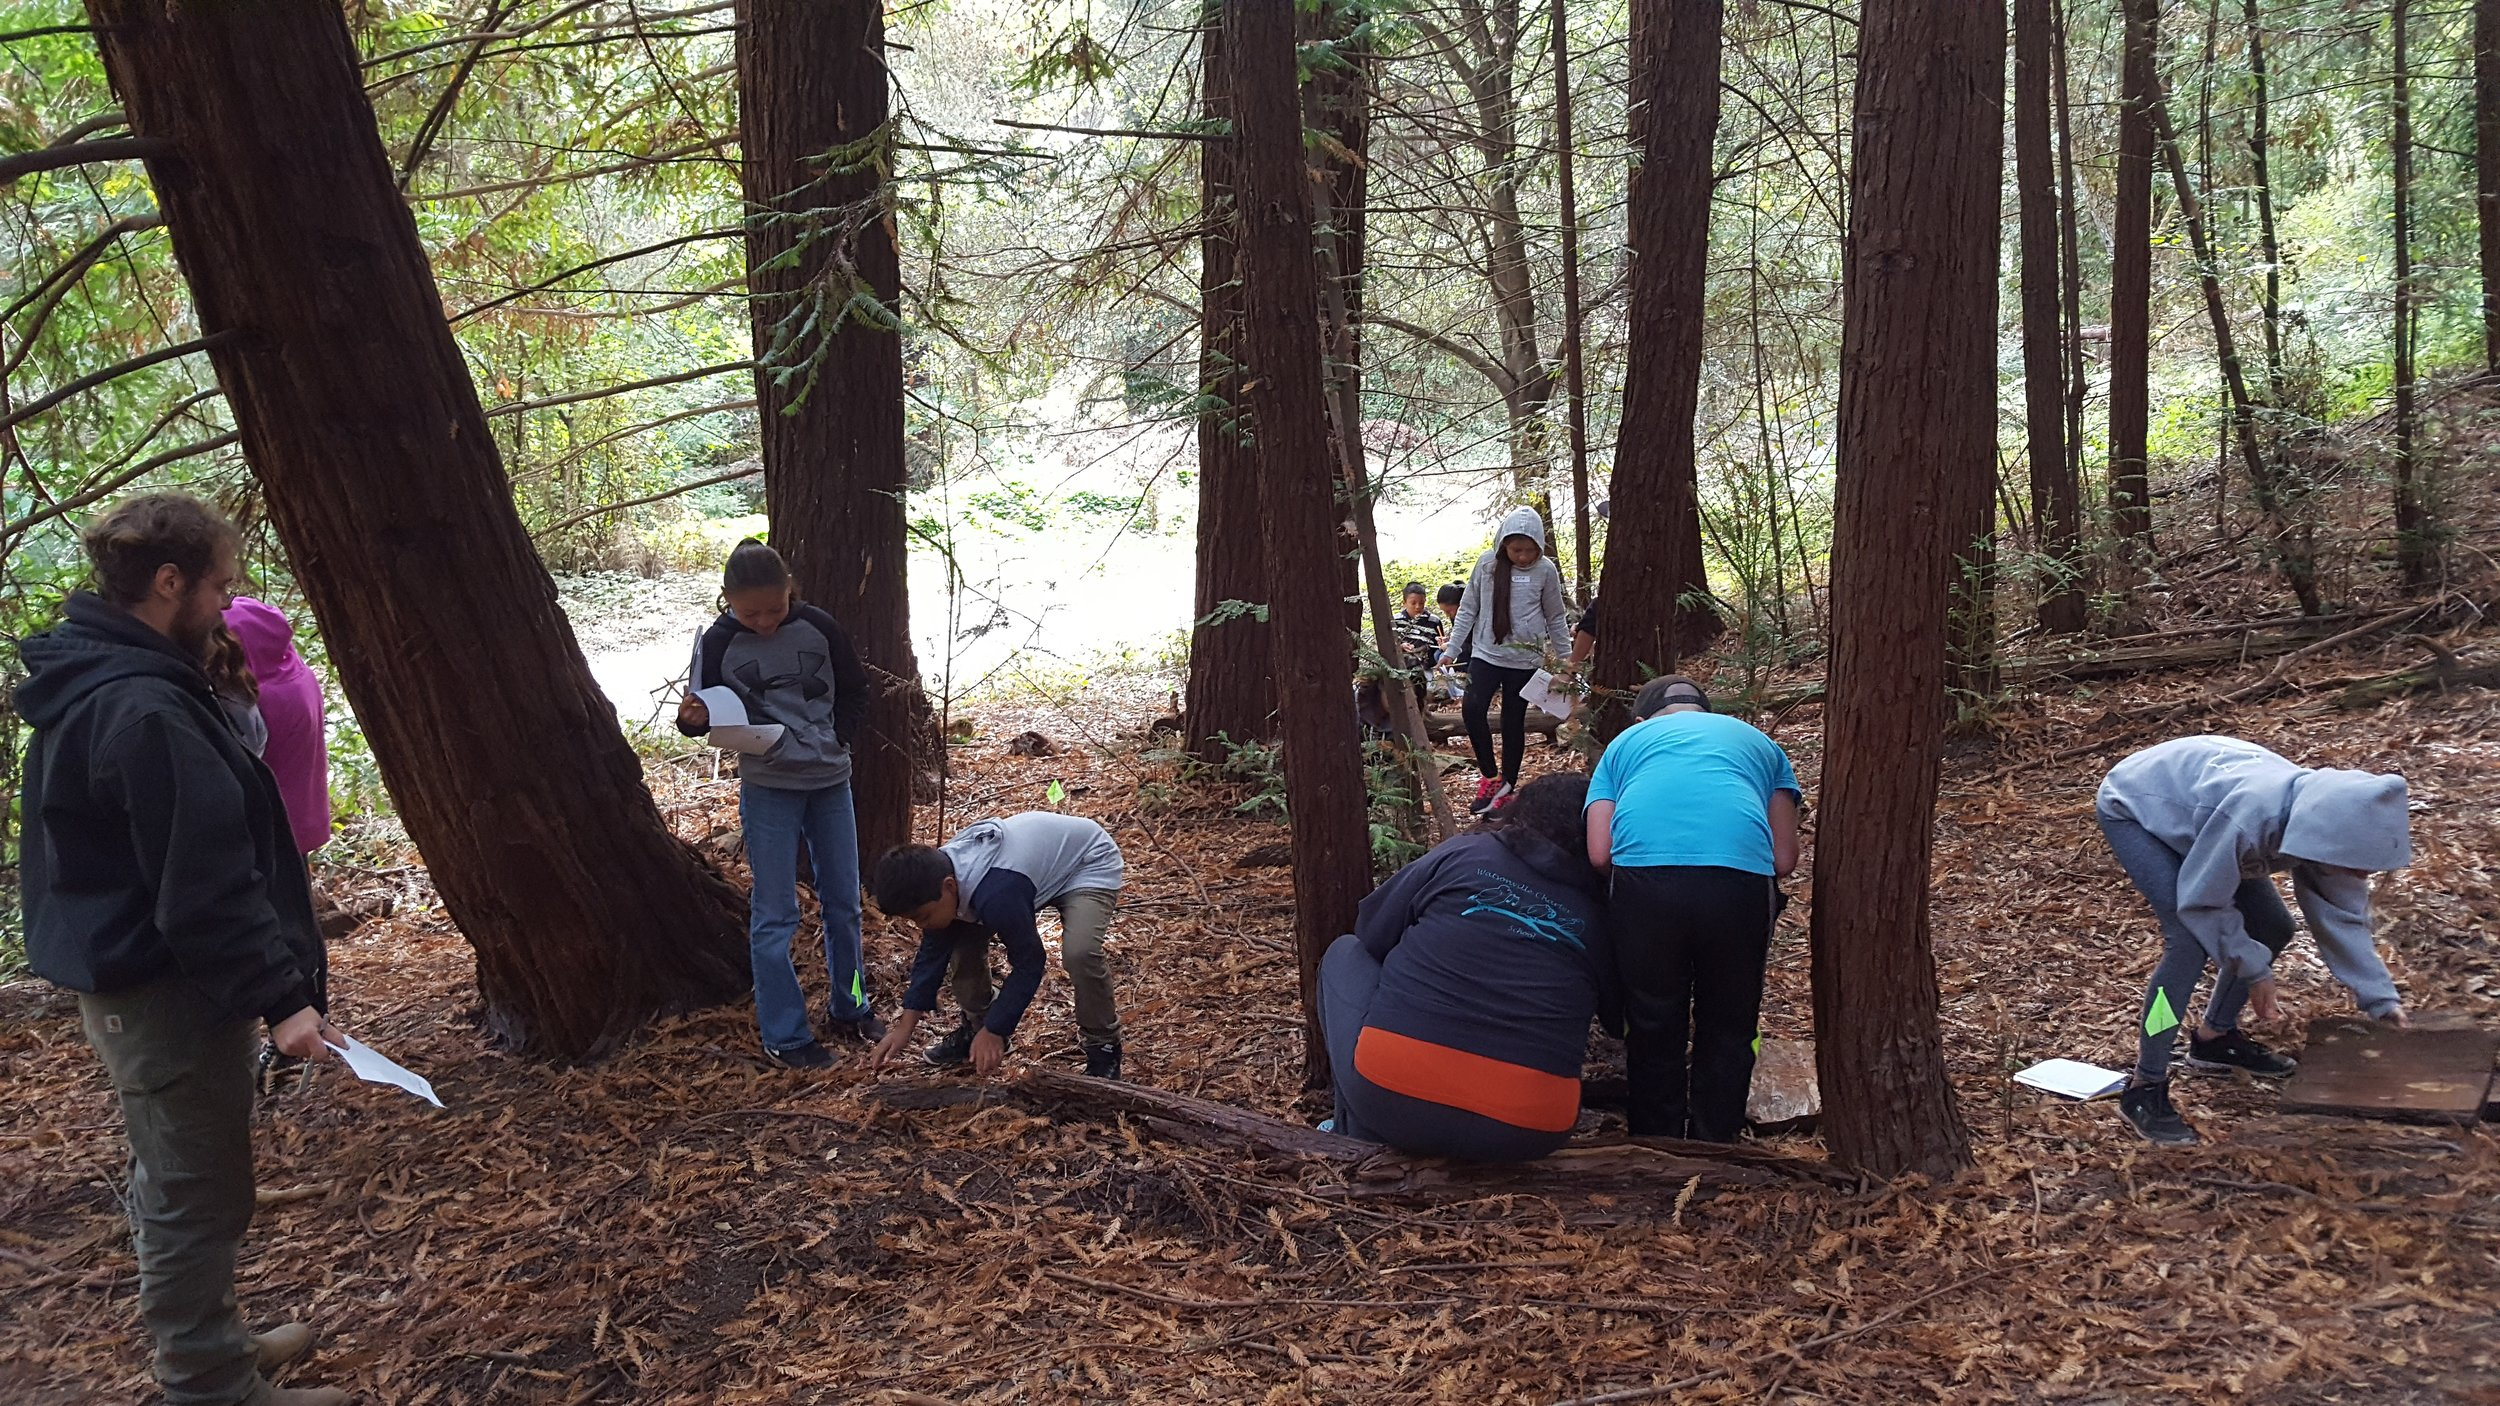 WOLF School's Salamander Study, a field study activity offered during their outdoor science school program at Camp Monte Toyon, incorporates Next Generation Science Standards.